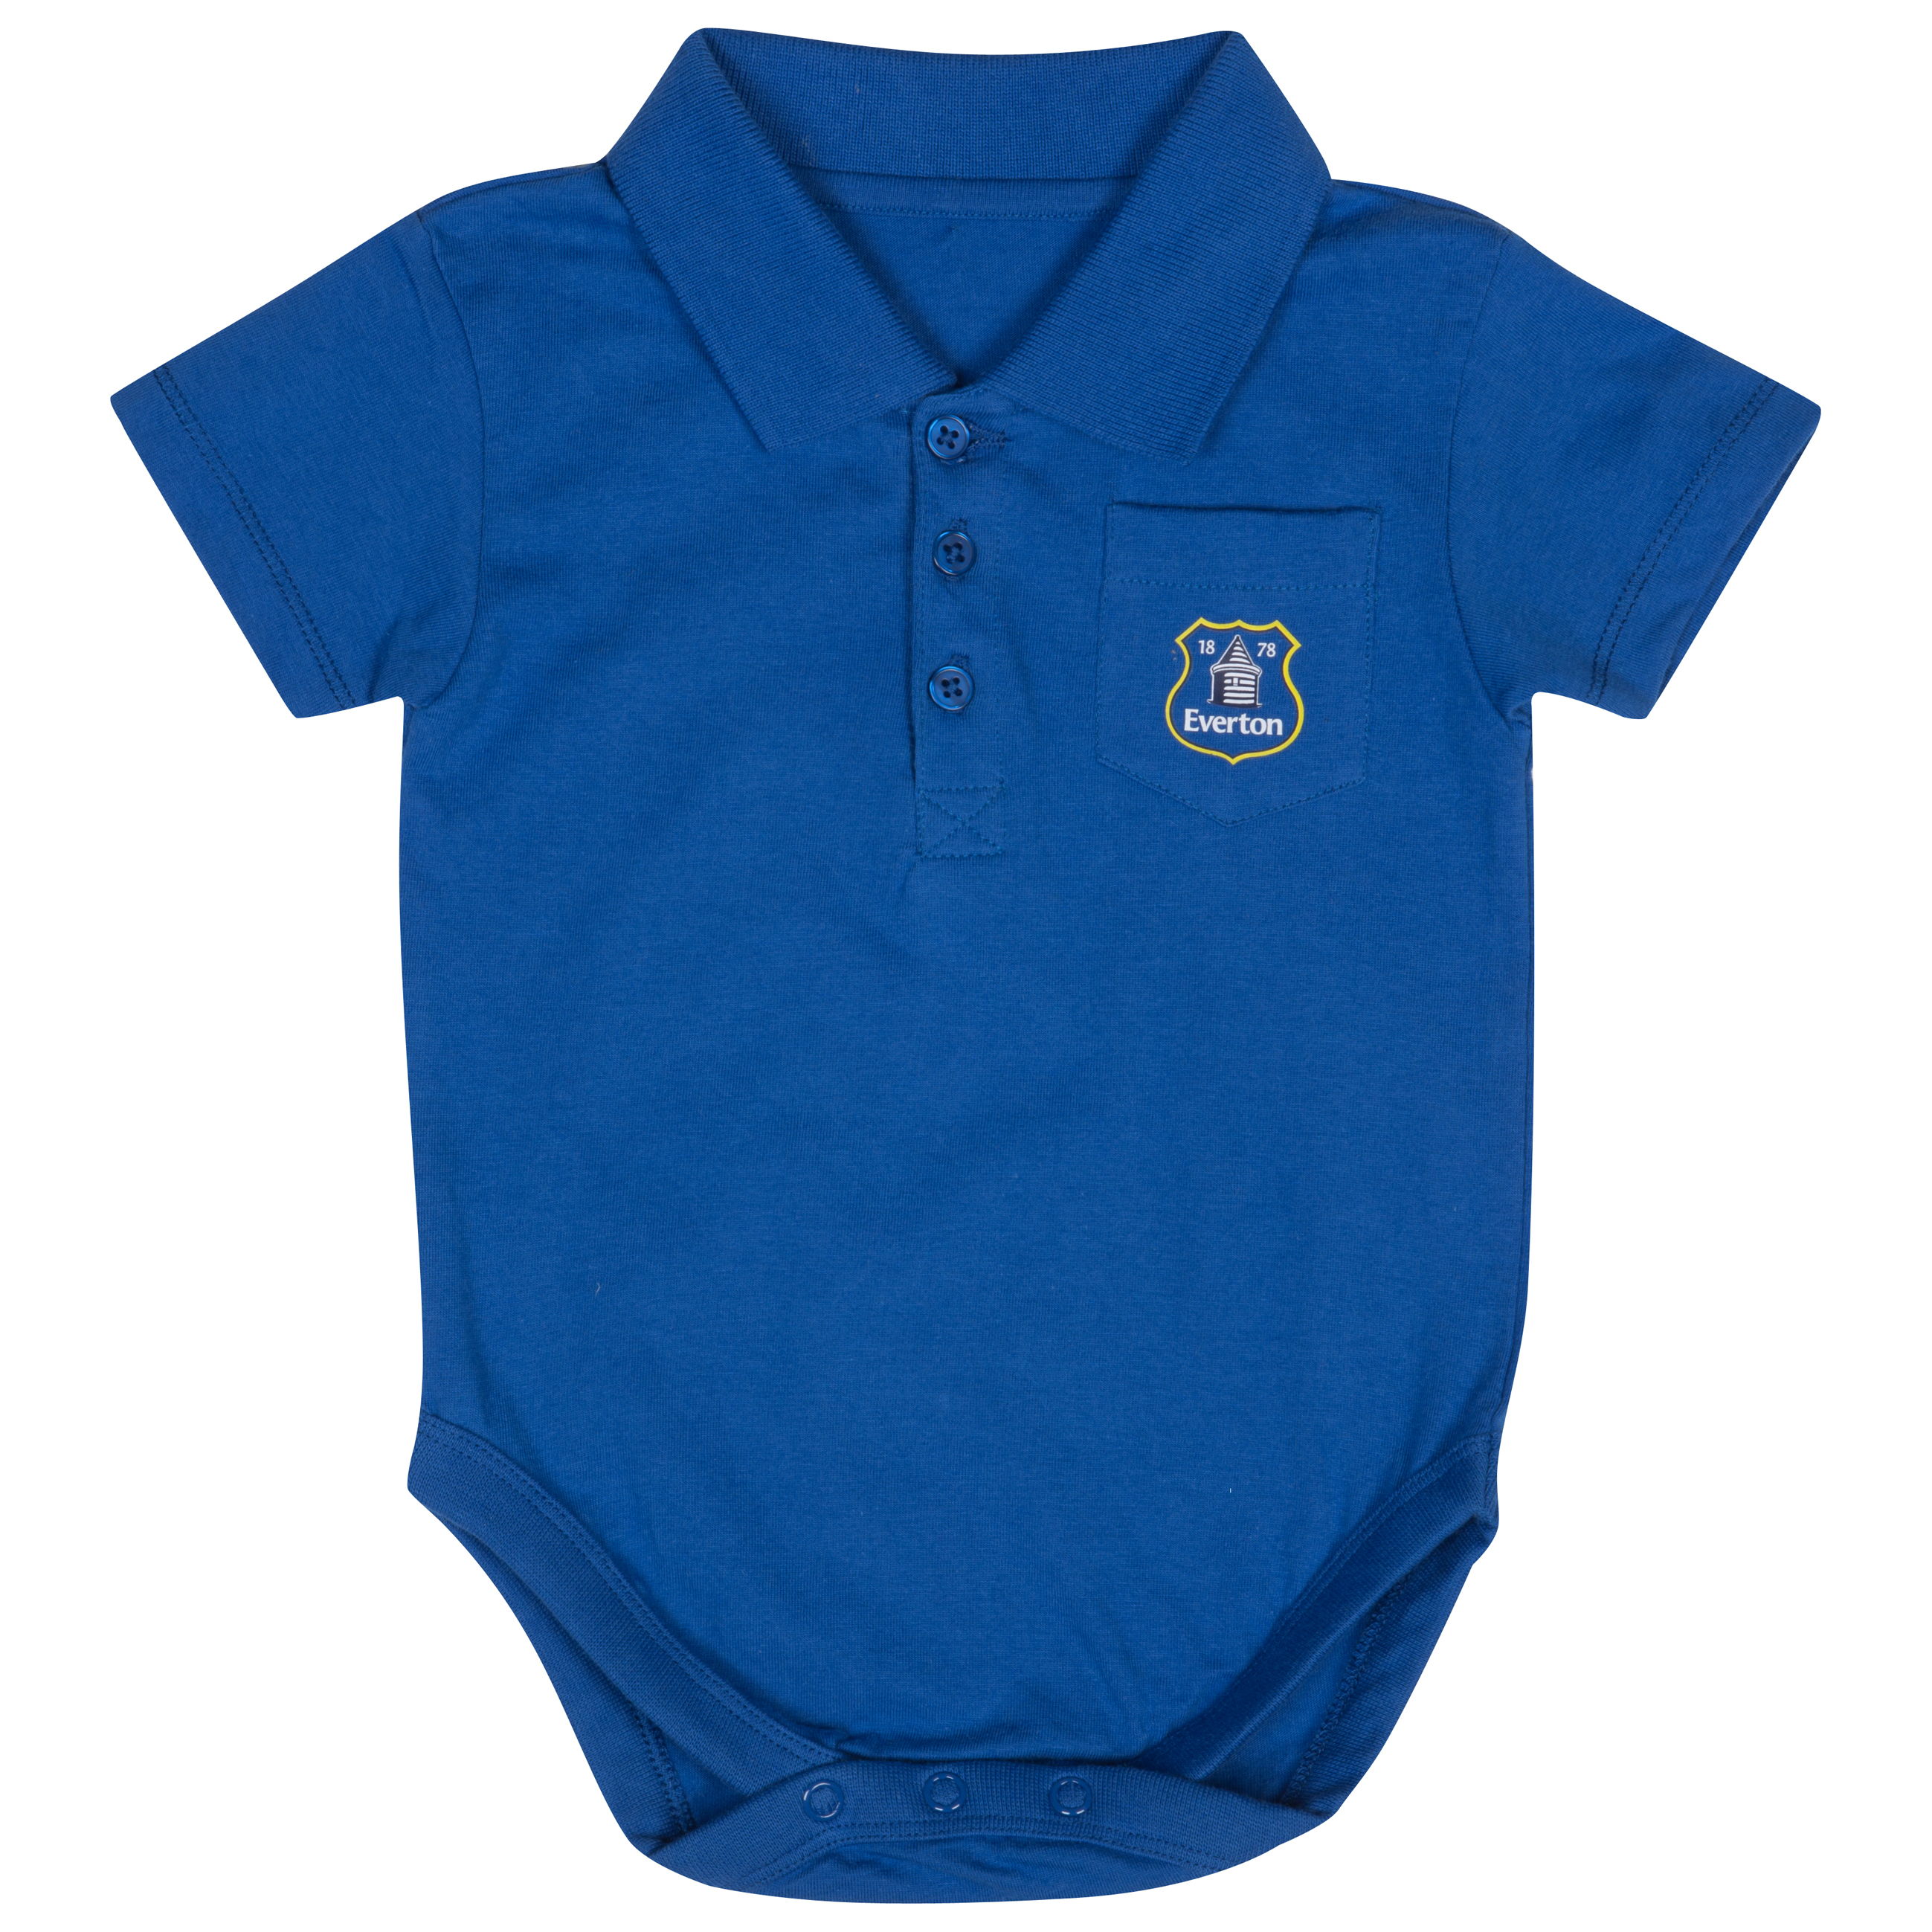 Everton Pocket Bodysuit - Blue - Baby